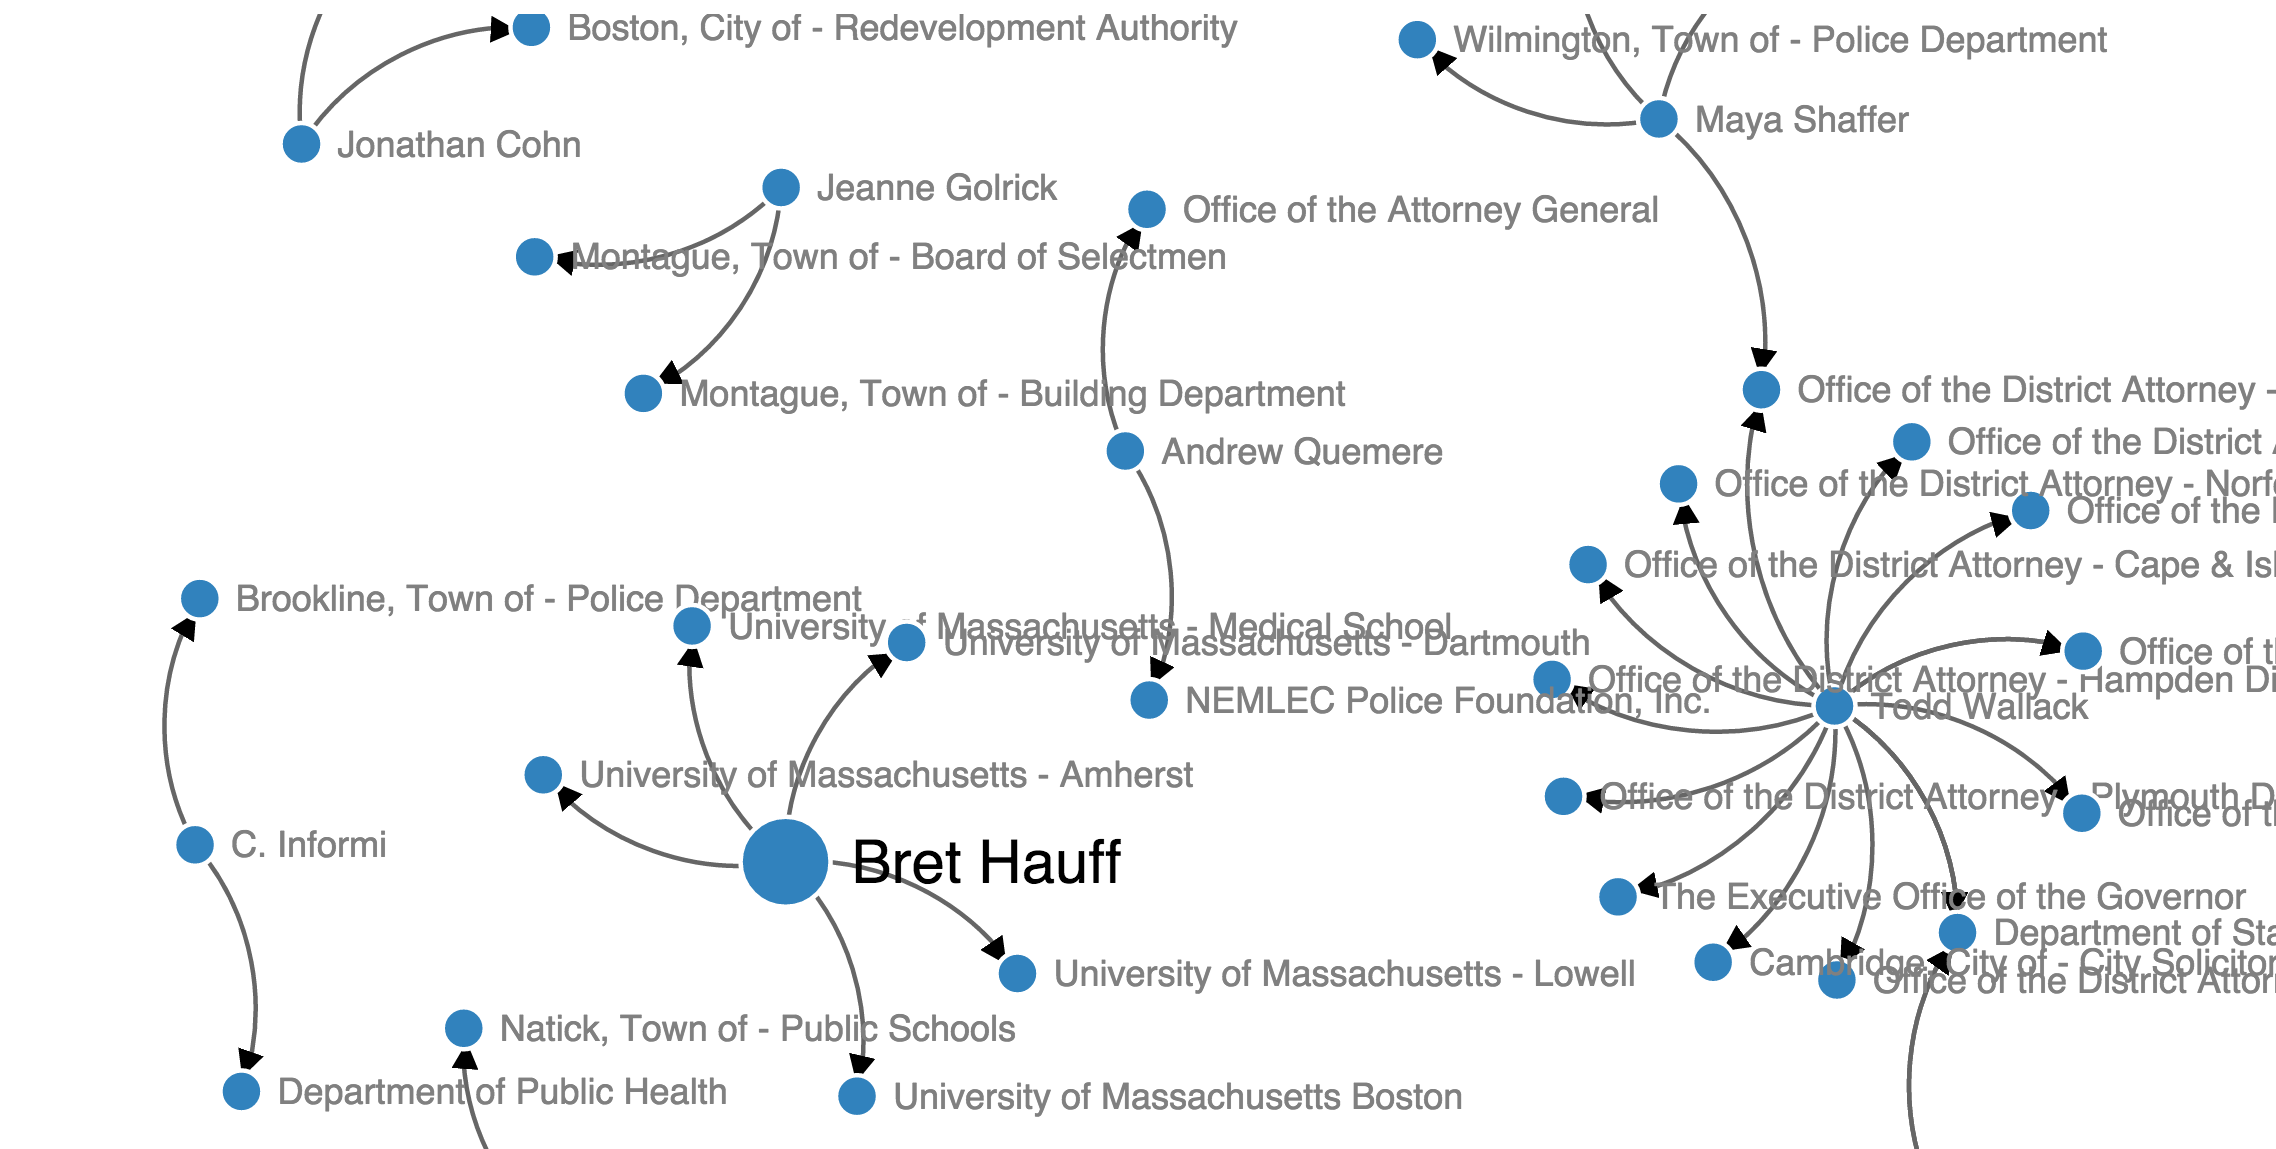 Visualizing public records appeals in your state - Storybench